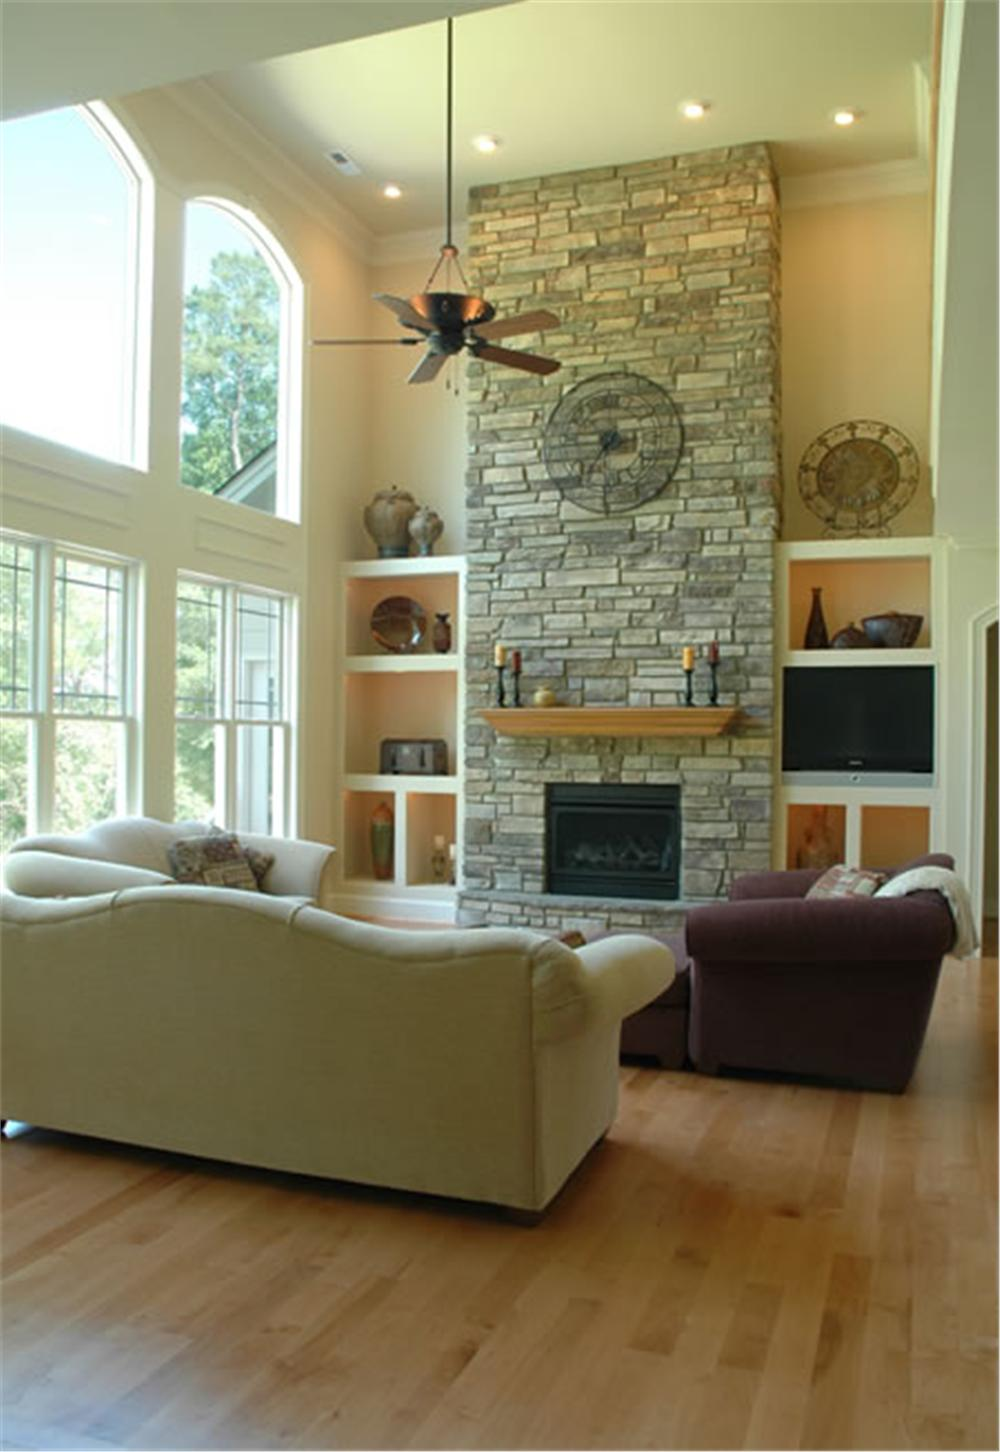 Great Room with neutral paint colors and massive chimney